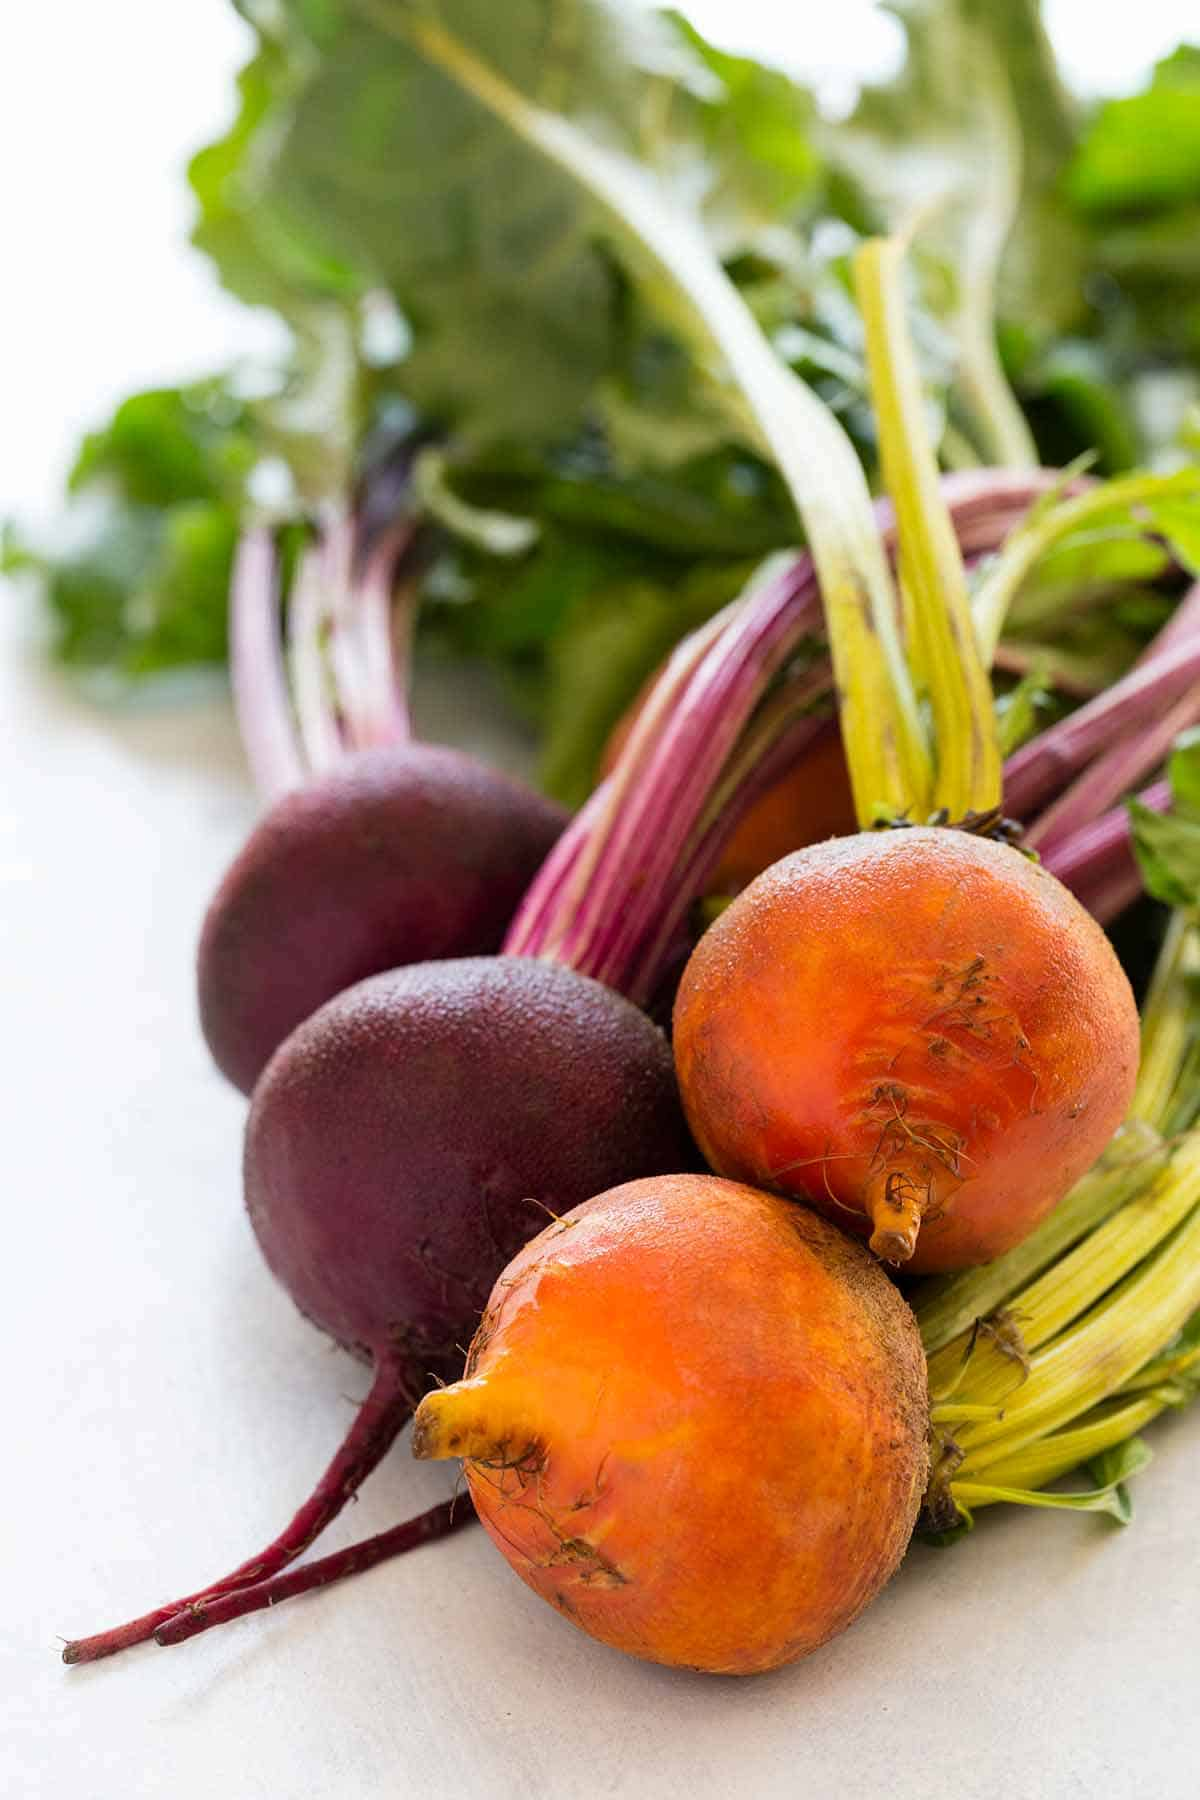 Learn how to cook beets with four easy methods like steam, boil, and two ways to roast them. Healthy dishes can be created using this incredible ingredient and I'm going to cover the basic techniques to maximize flavor